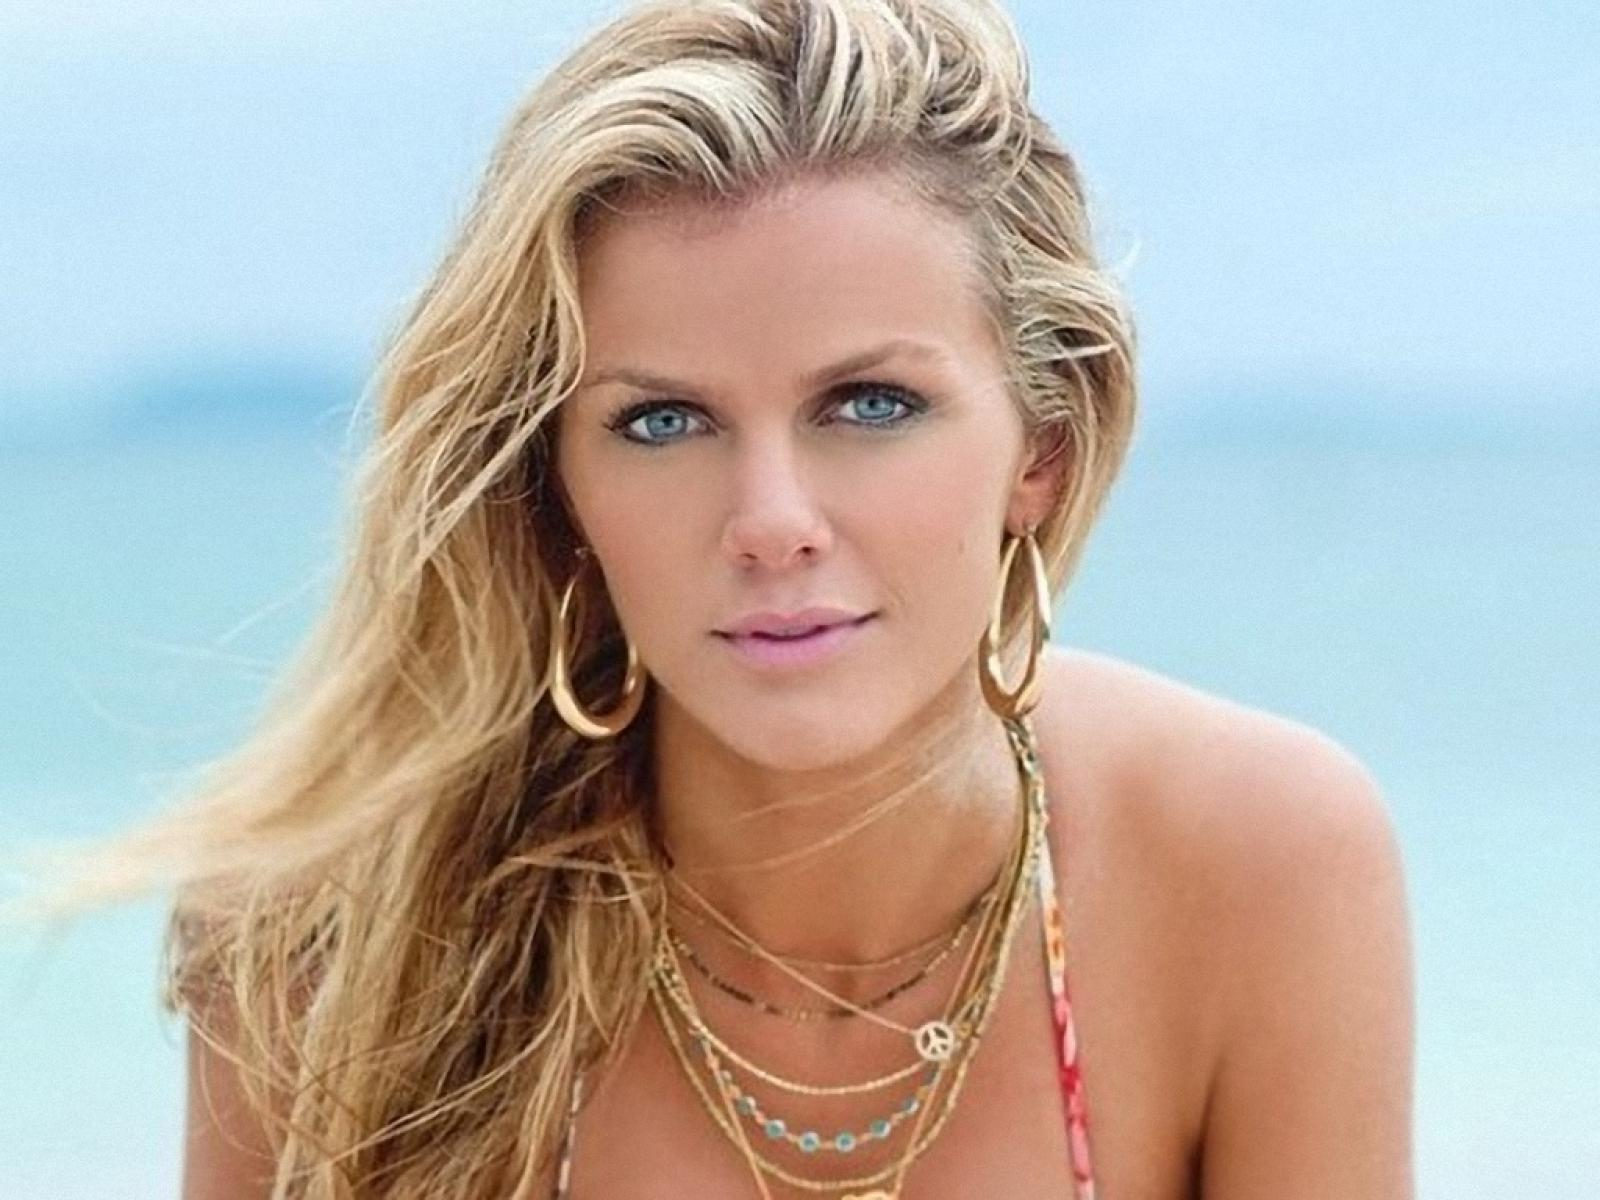 Brooklyn Decker desktop wallpaper